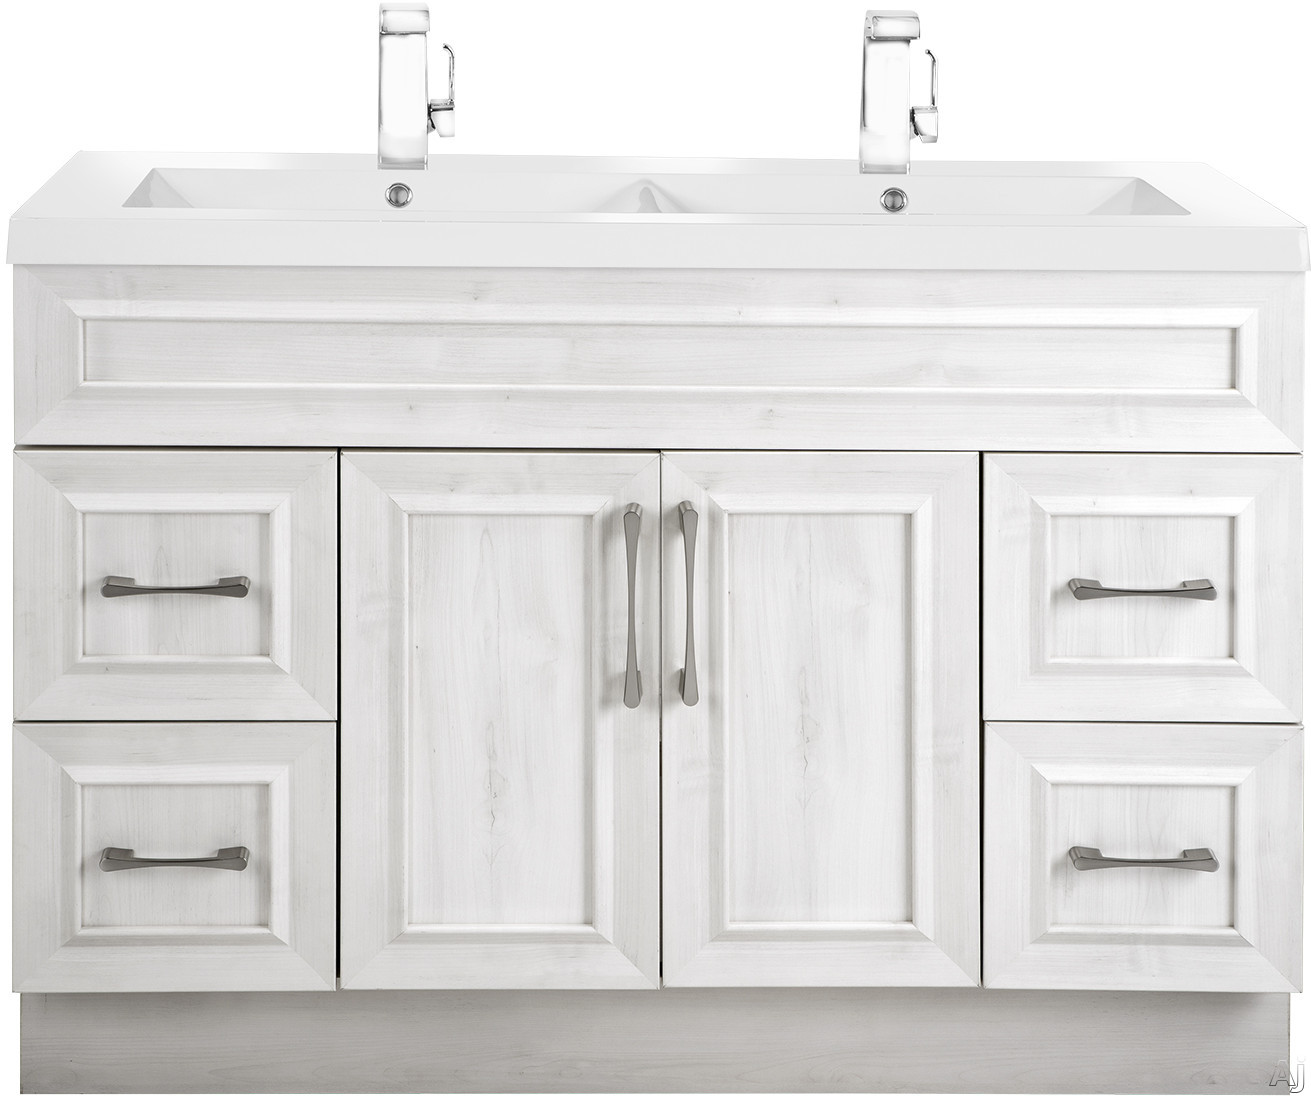 Cutler Kitchen & Bath Classic CCTRFH48DBT 48 Inch Freestanding Double Bowl Vanity with 4 Soft Close Drawers, Countertop and Sink and Handles Included